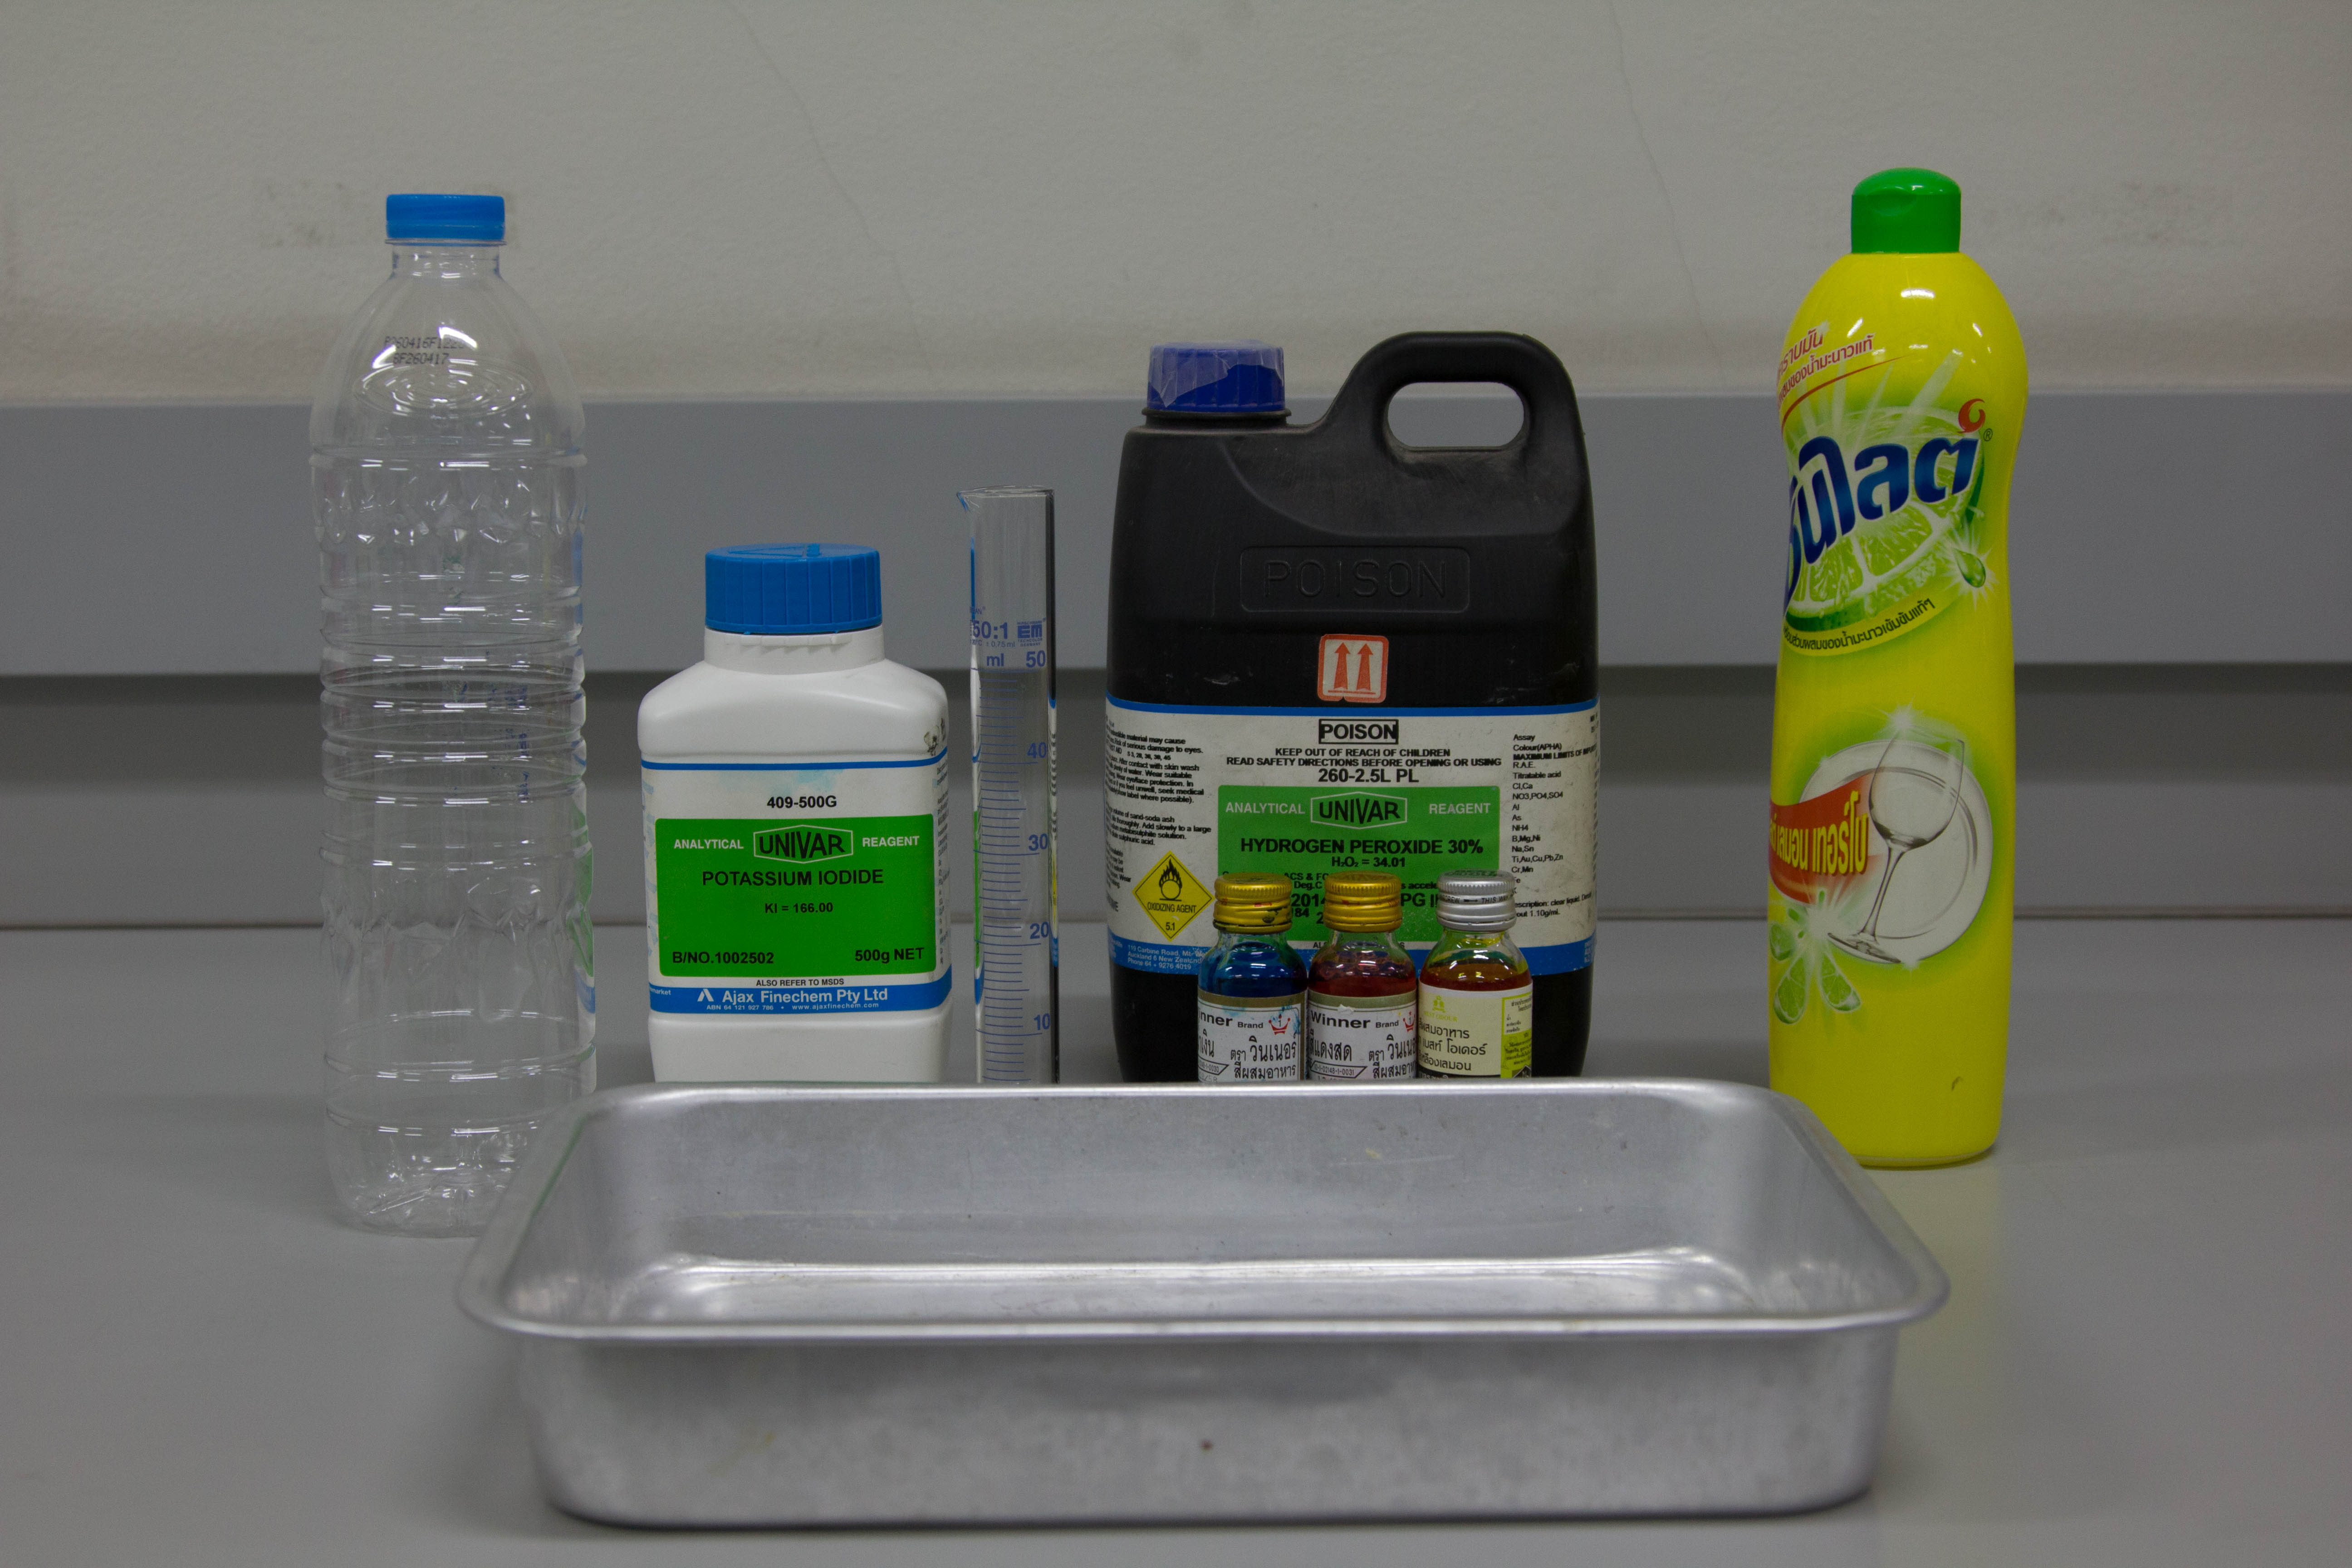 Materials For The Experiment